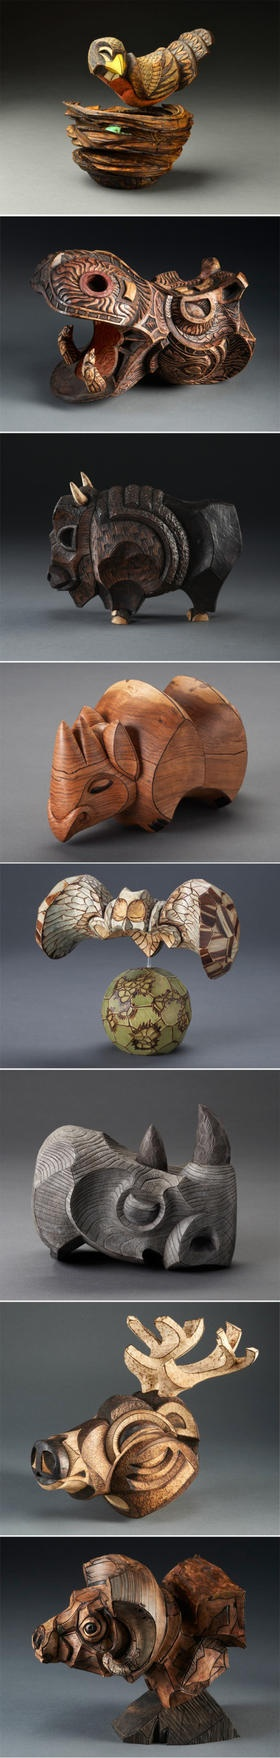 (trying to find the artist for these animal carvings...)